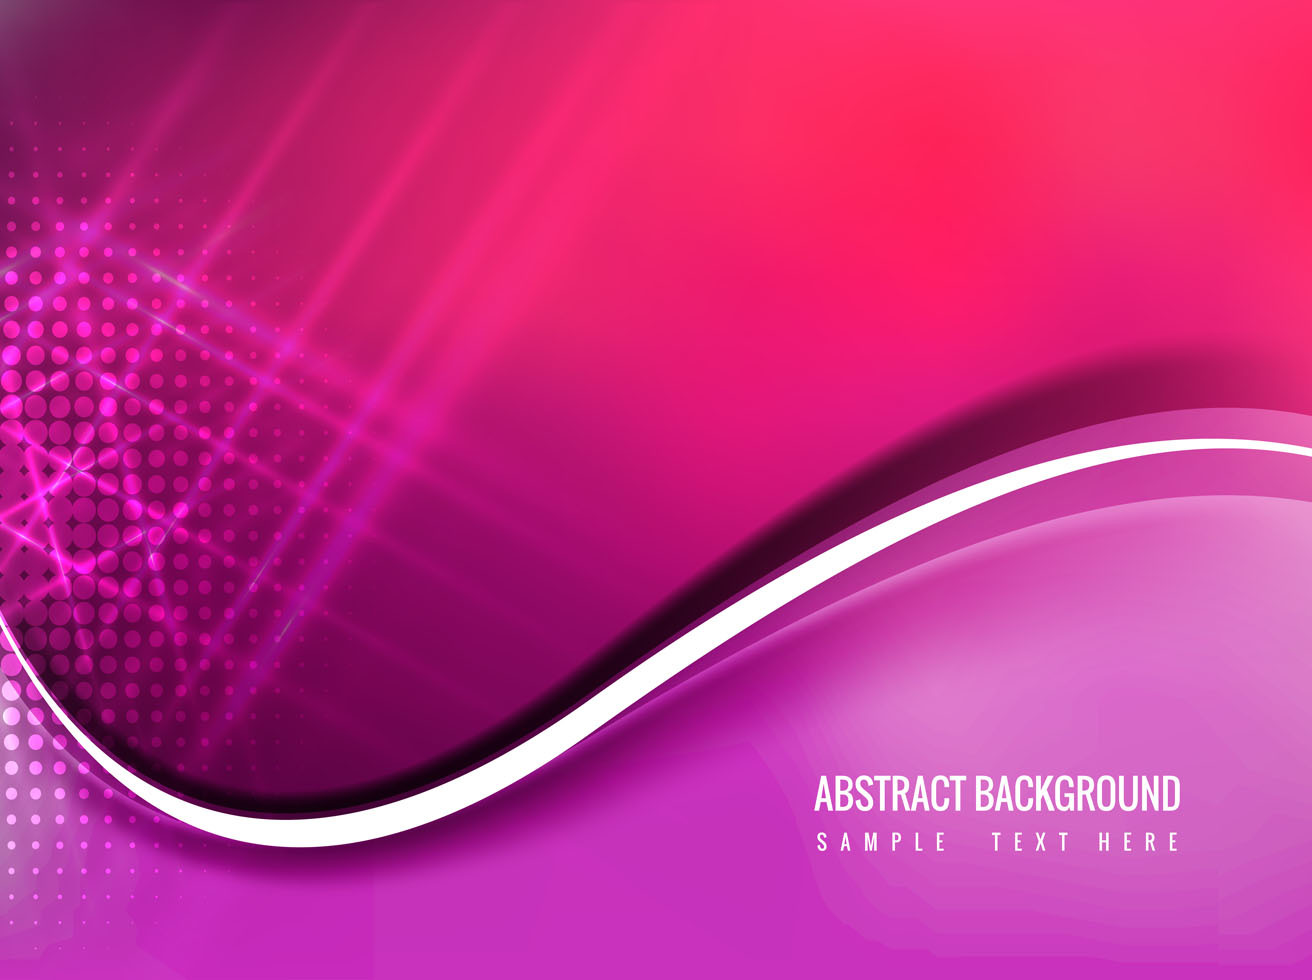 Free Vector Pink Color Abstract Background Vector Art ...Pink And Black Background Vector Designs